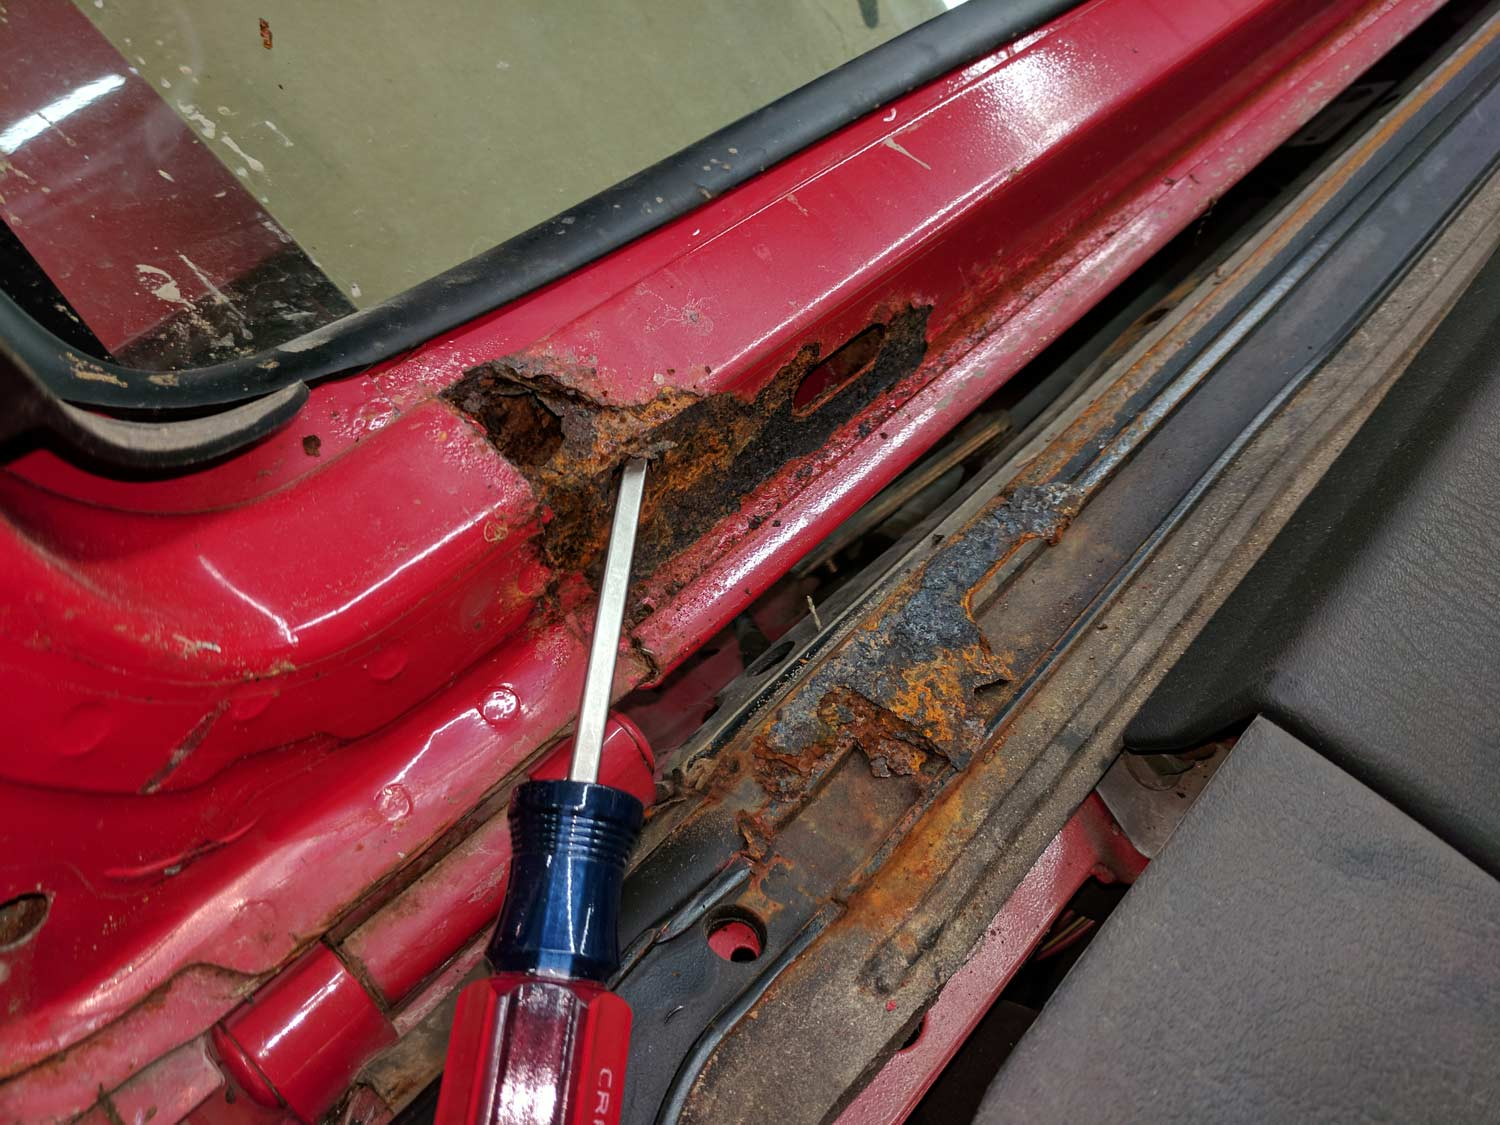 20181231_rust-windshield-frame.jpg